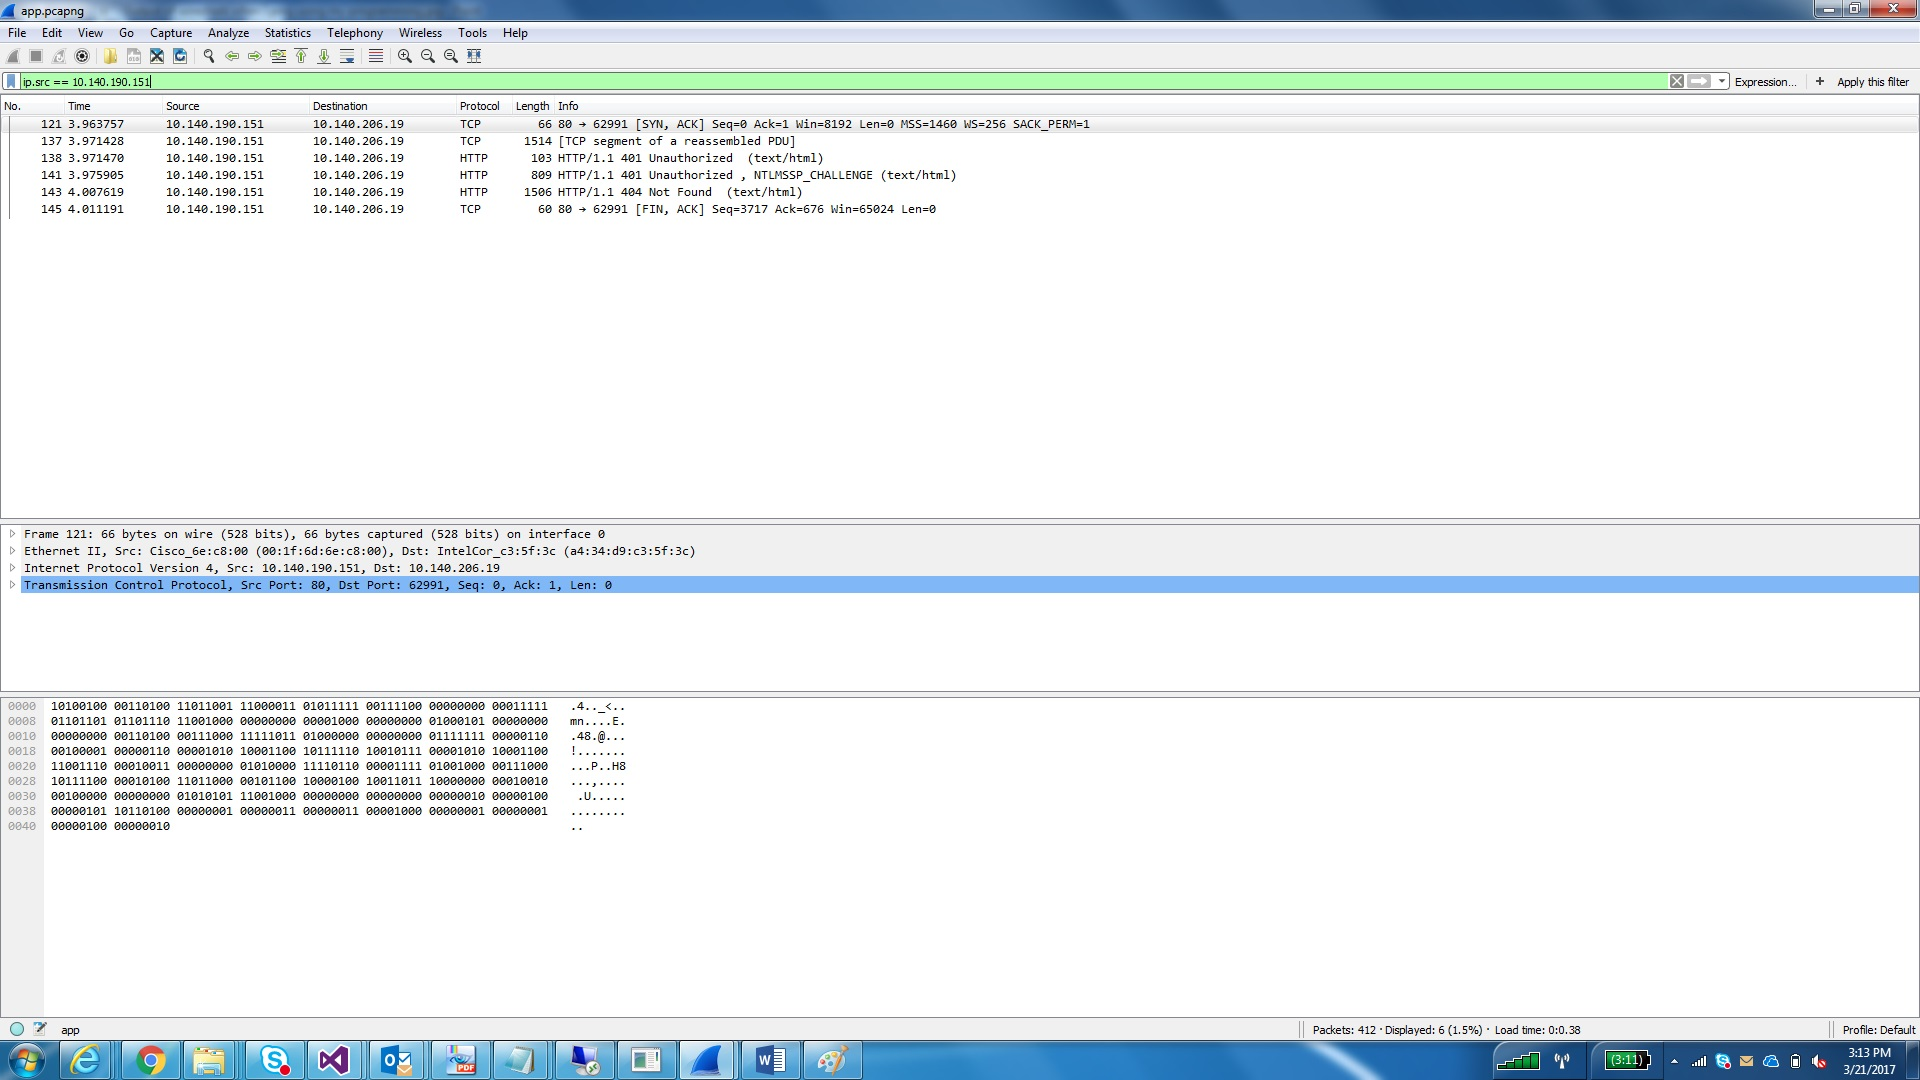 Output of wireshark when I ping using my program